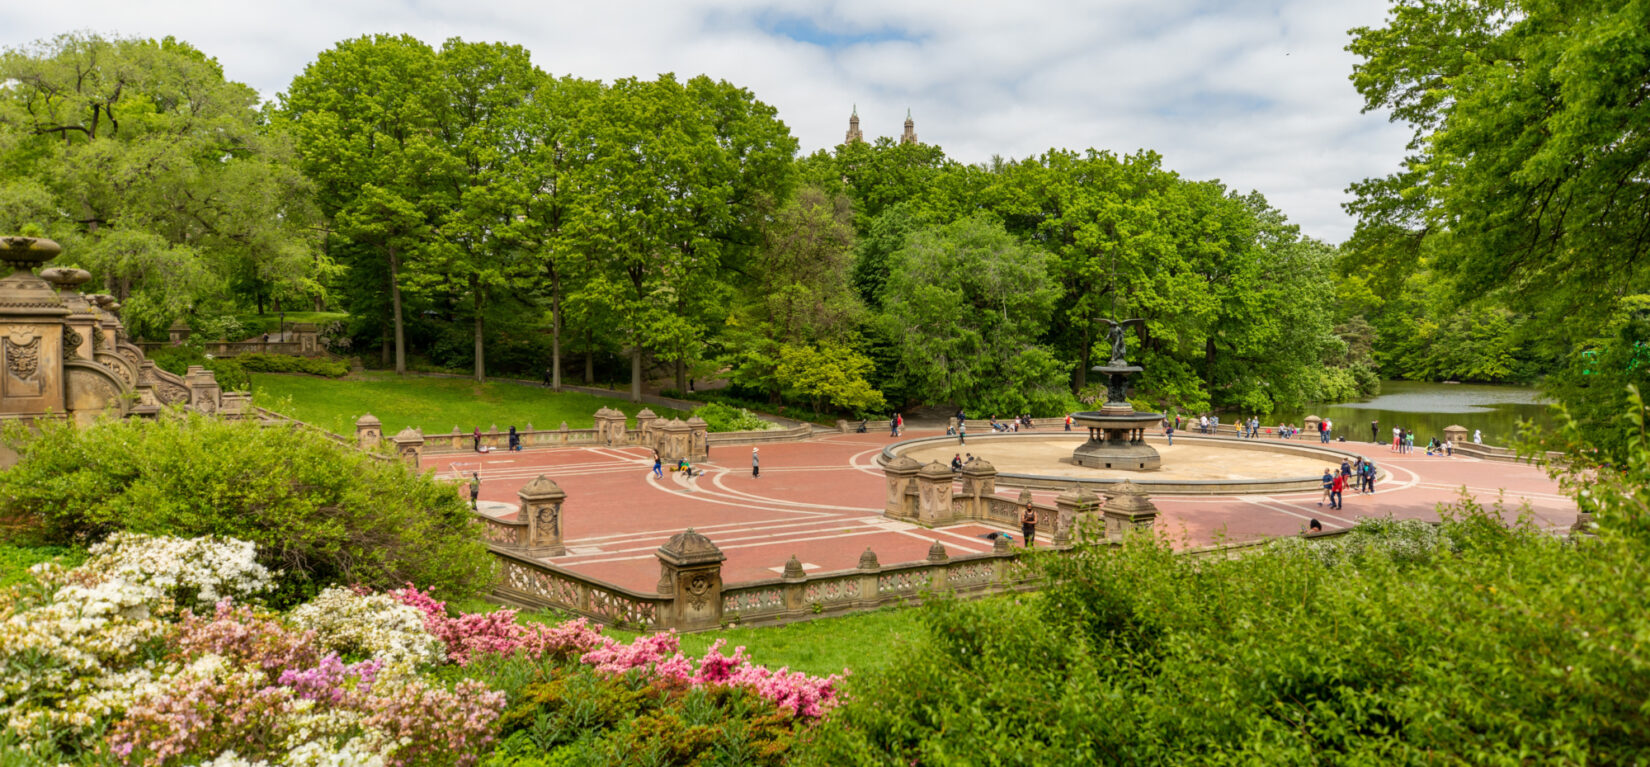 Bethesda Terrace embedded in the lush green foliage of summer